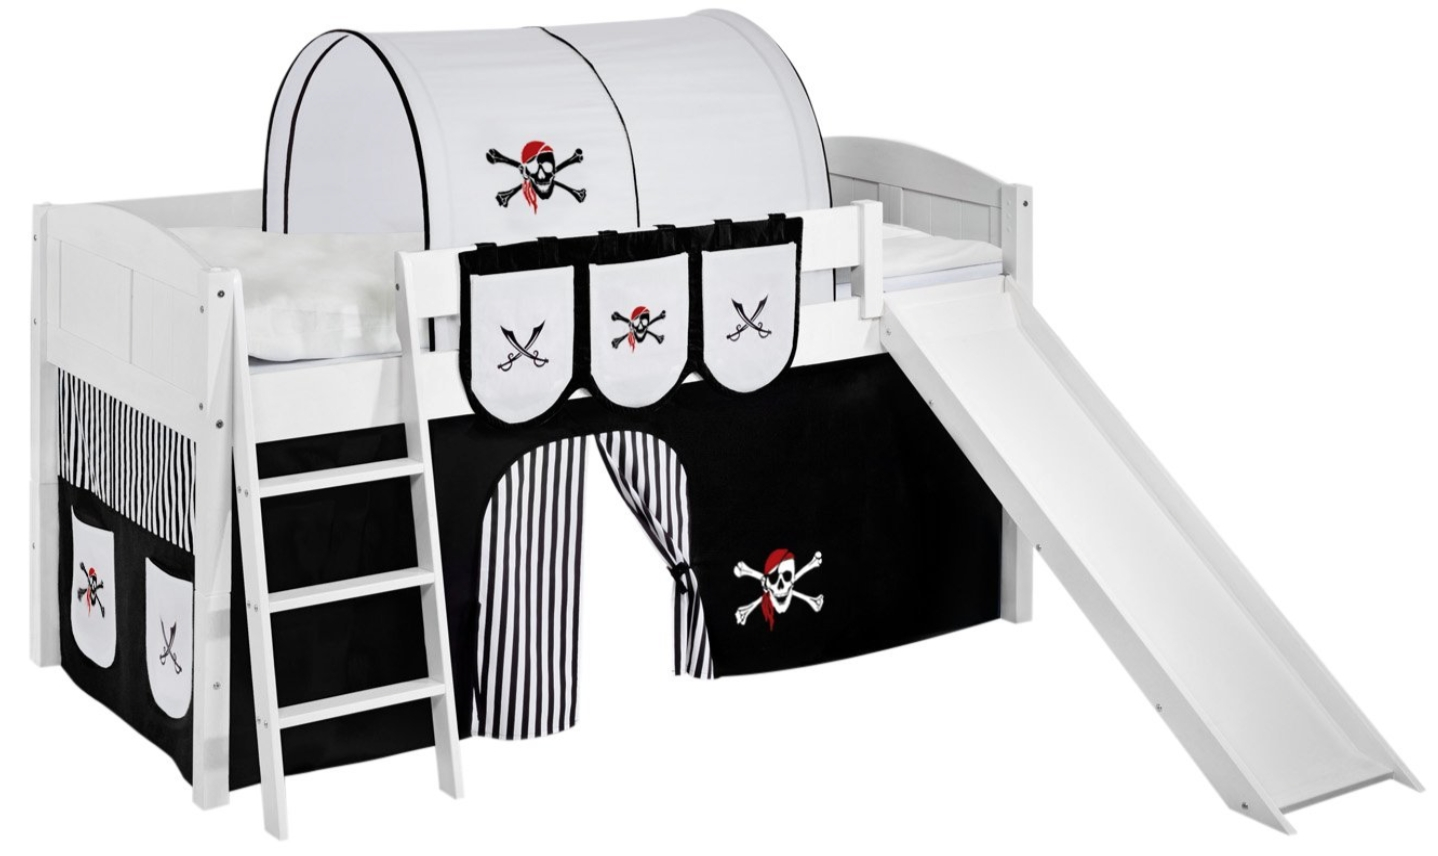 lit sur lev blanc laqu toboggan ida rideau pirate noir. Black Bedroom Furniture Sets. Home Design Ideas